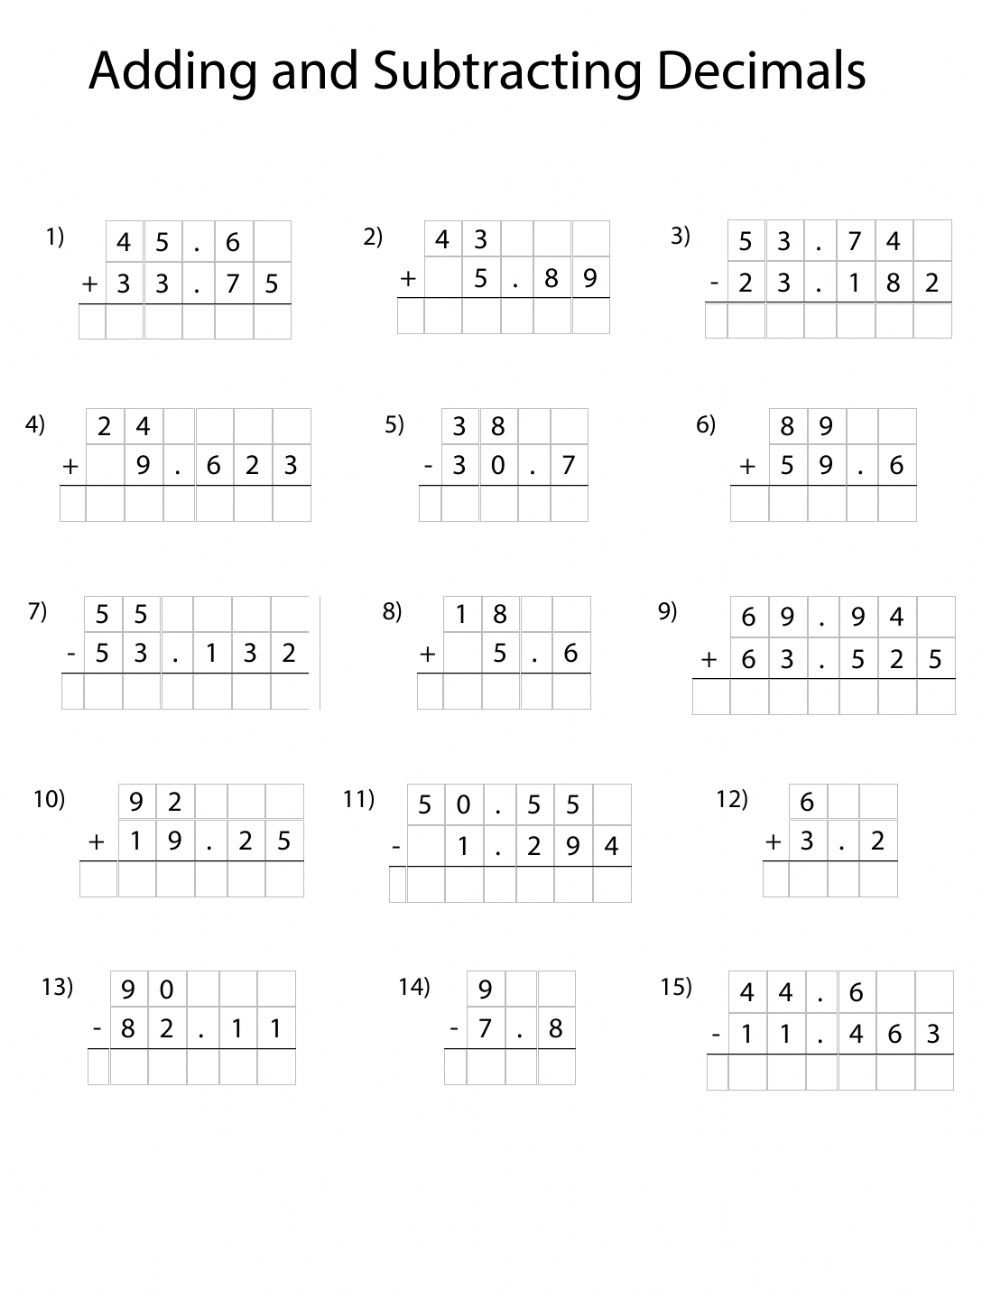 Decimal Numbers Online Worksheet For 5th You Can Do The Exercises Online Or Download T In 2021 Subtracting Decimals Decimals Worksheets Subtracting Decimals Worksheet Adding and subtracting decimals grade 6